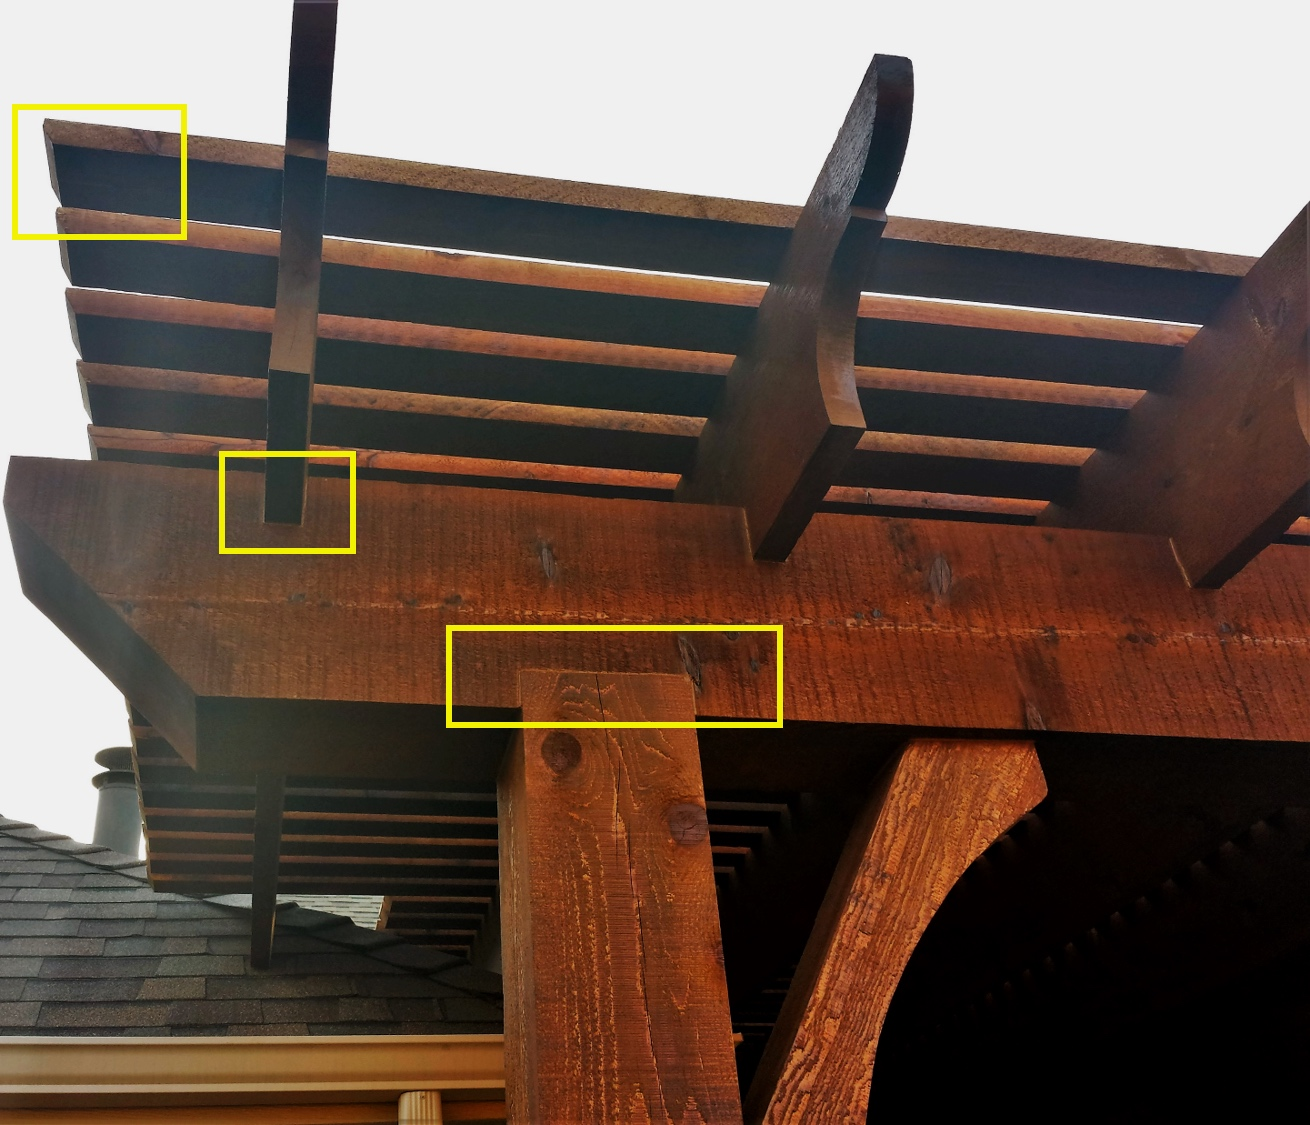 Exclusive to Pergola Jack. Notched full sized headers without bulky metal hardware. Seamless integration of joists, header, and posts. Use of 2x4's as opposed to the standard 1x2's. Inimitable beauty and strength; others simply do not compare.